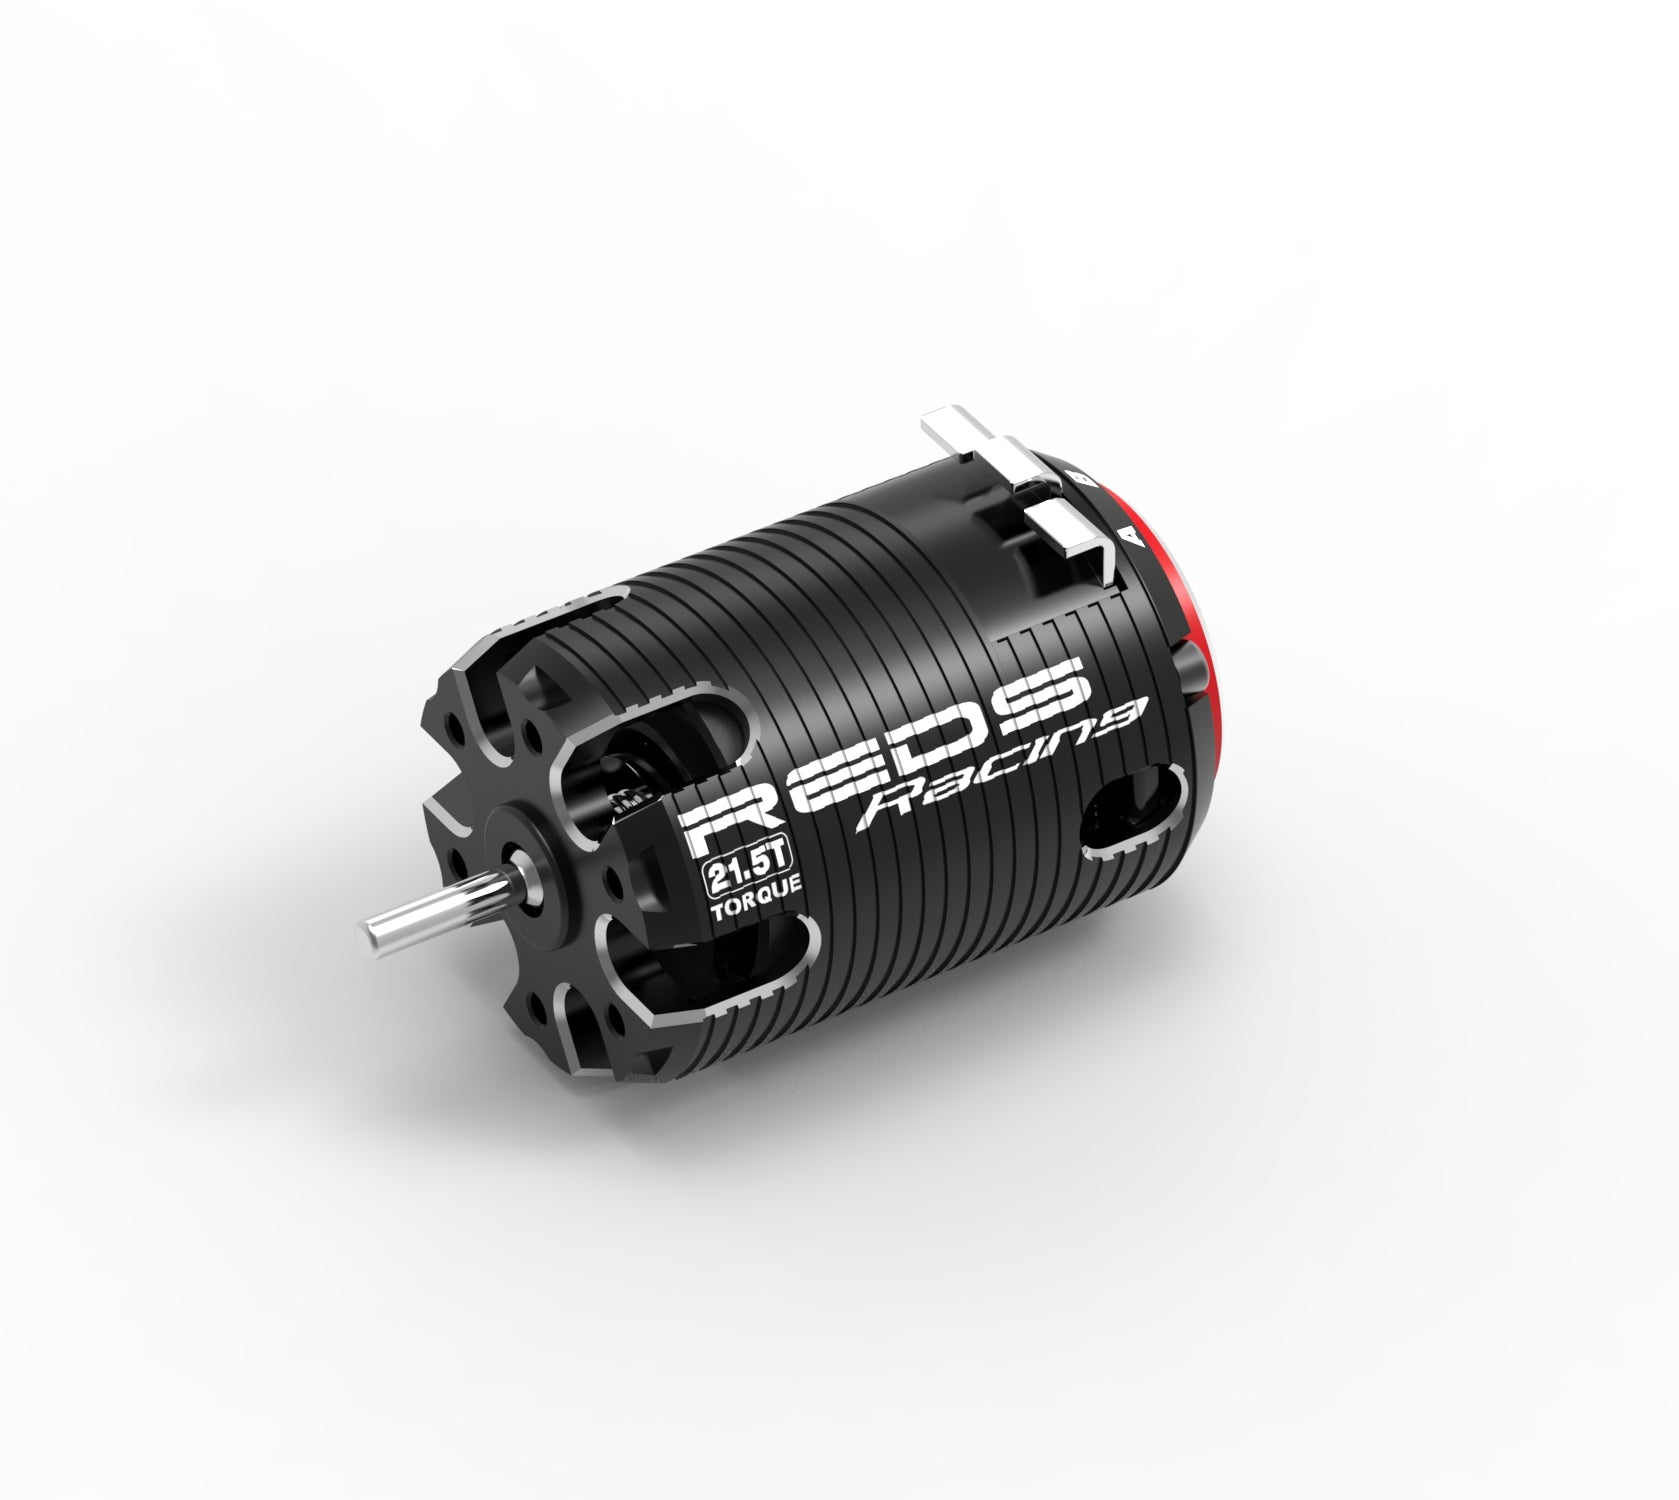 Reds Racing Vx 540 Sensored Brushless Motors 3 5t 21 5t